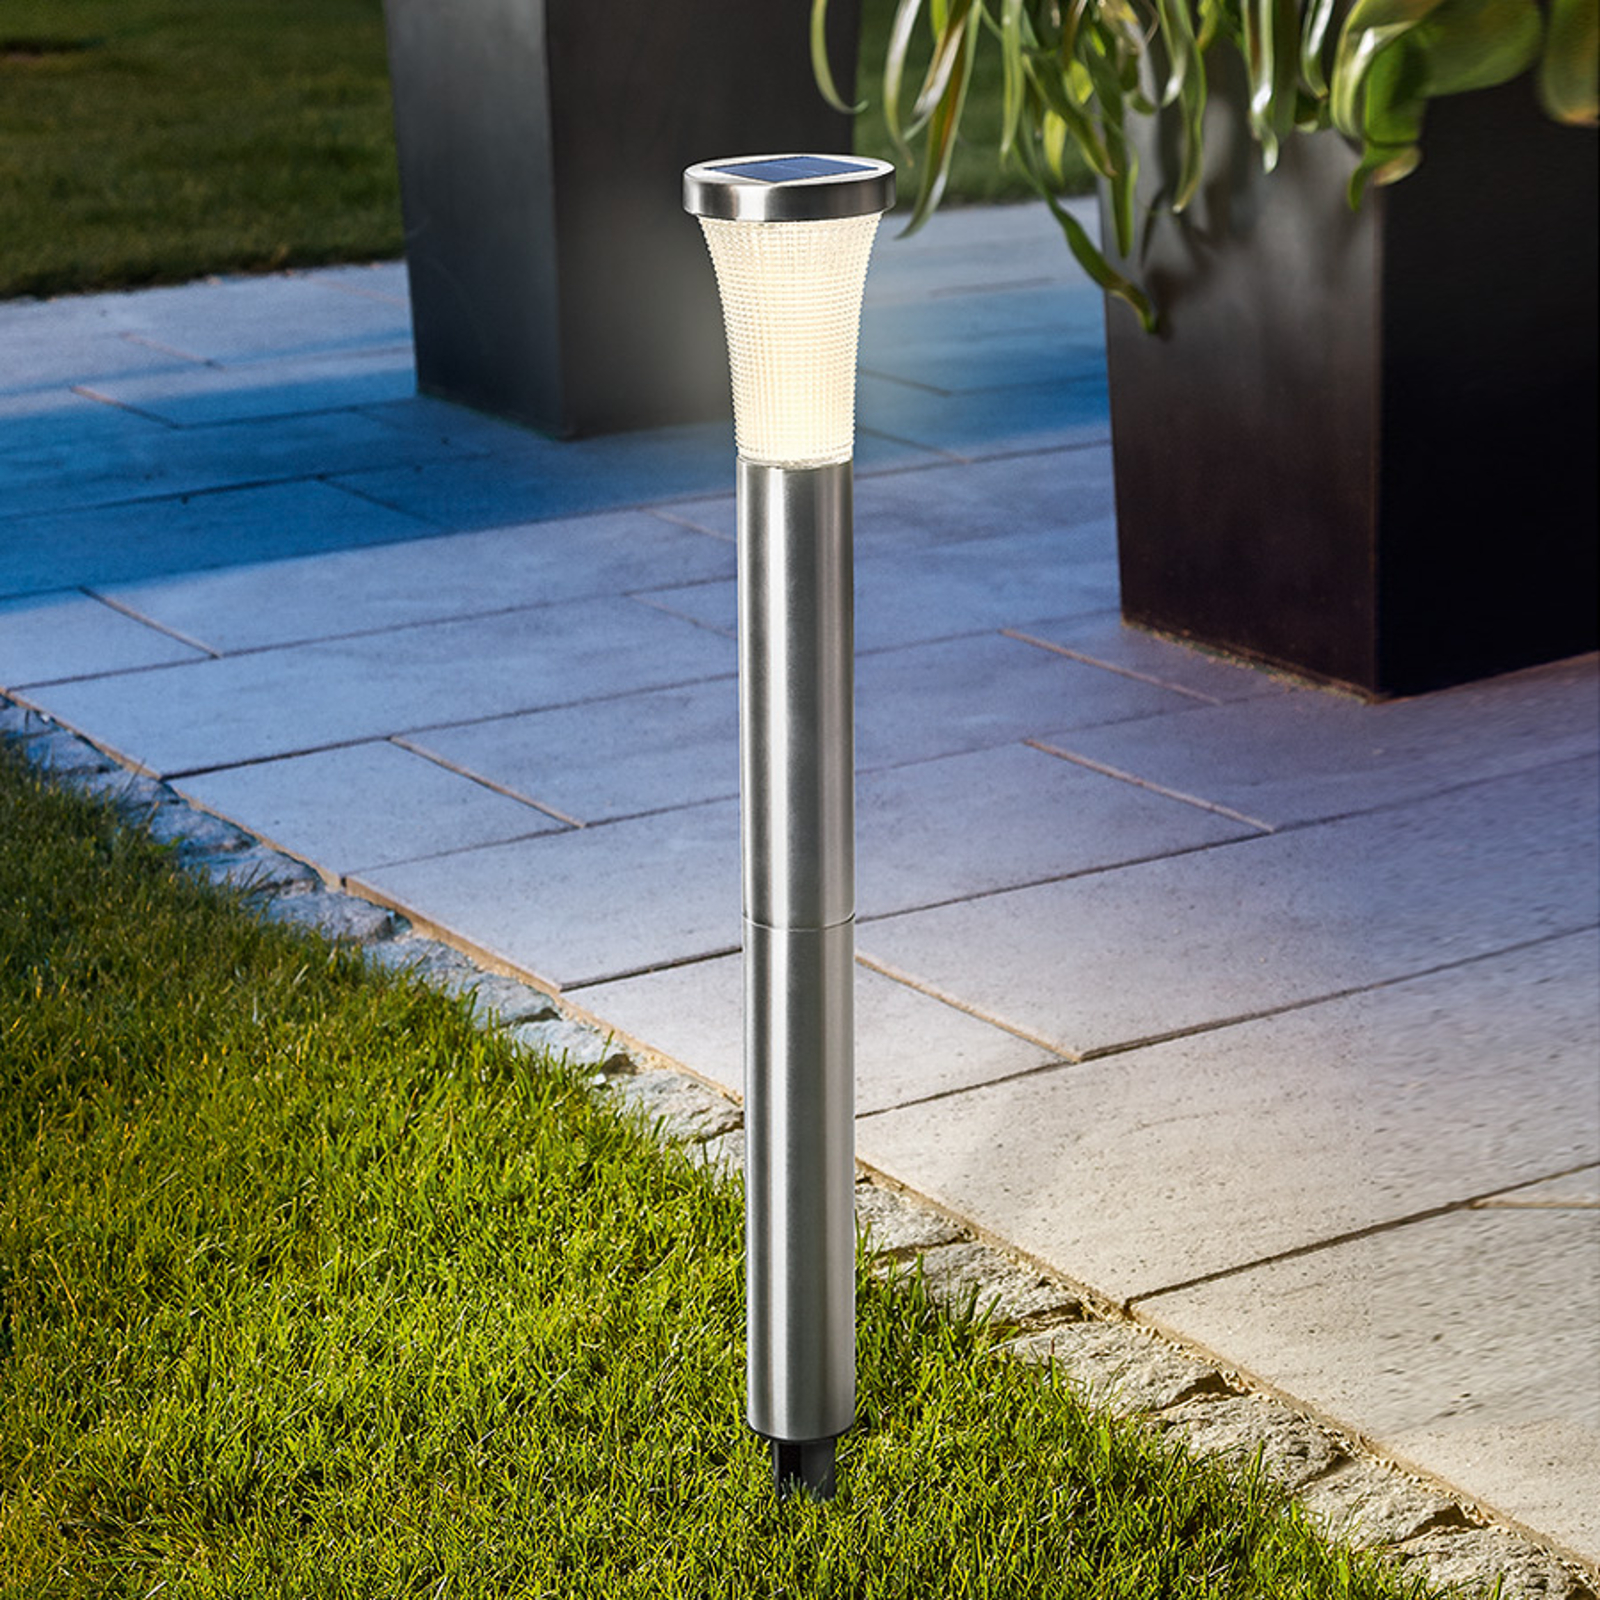 LED solar lamp with ground spike - Tower Light_3012520_1